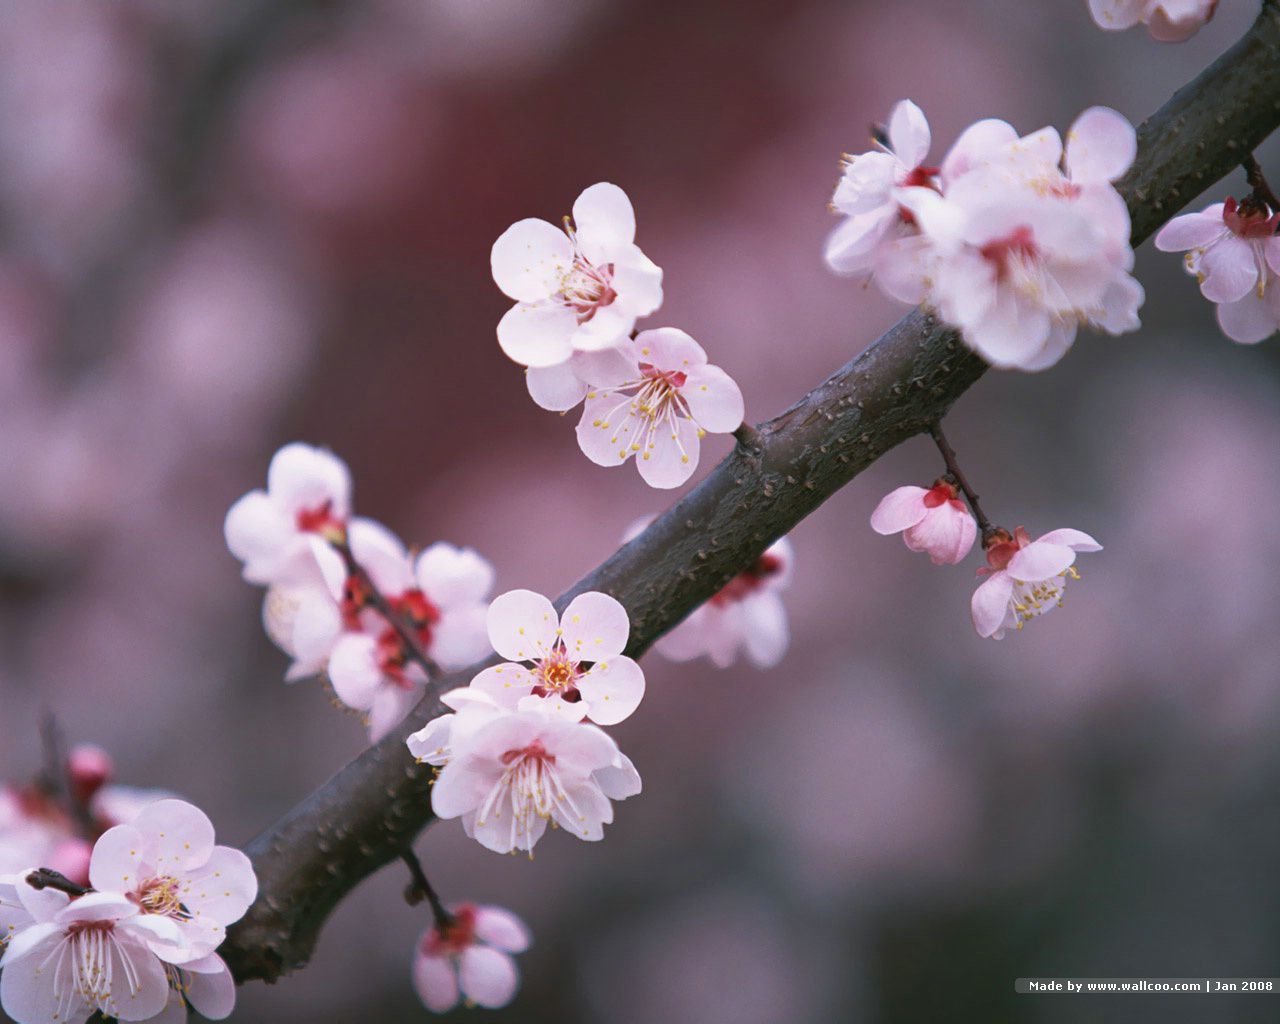 Japanese cherry blossoms on a branch